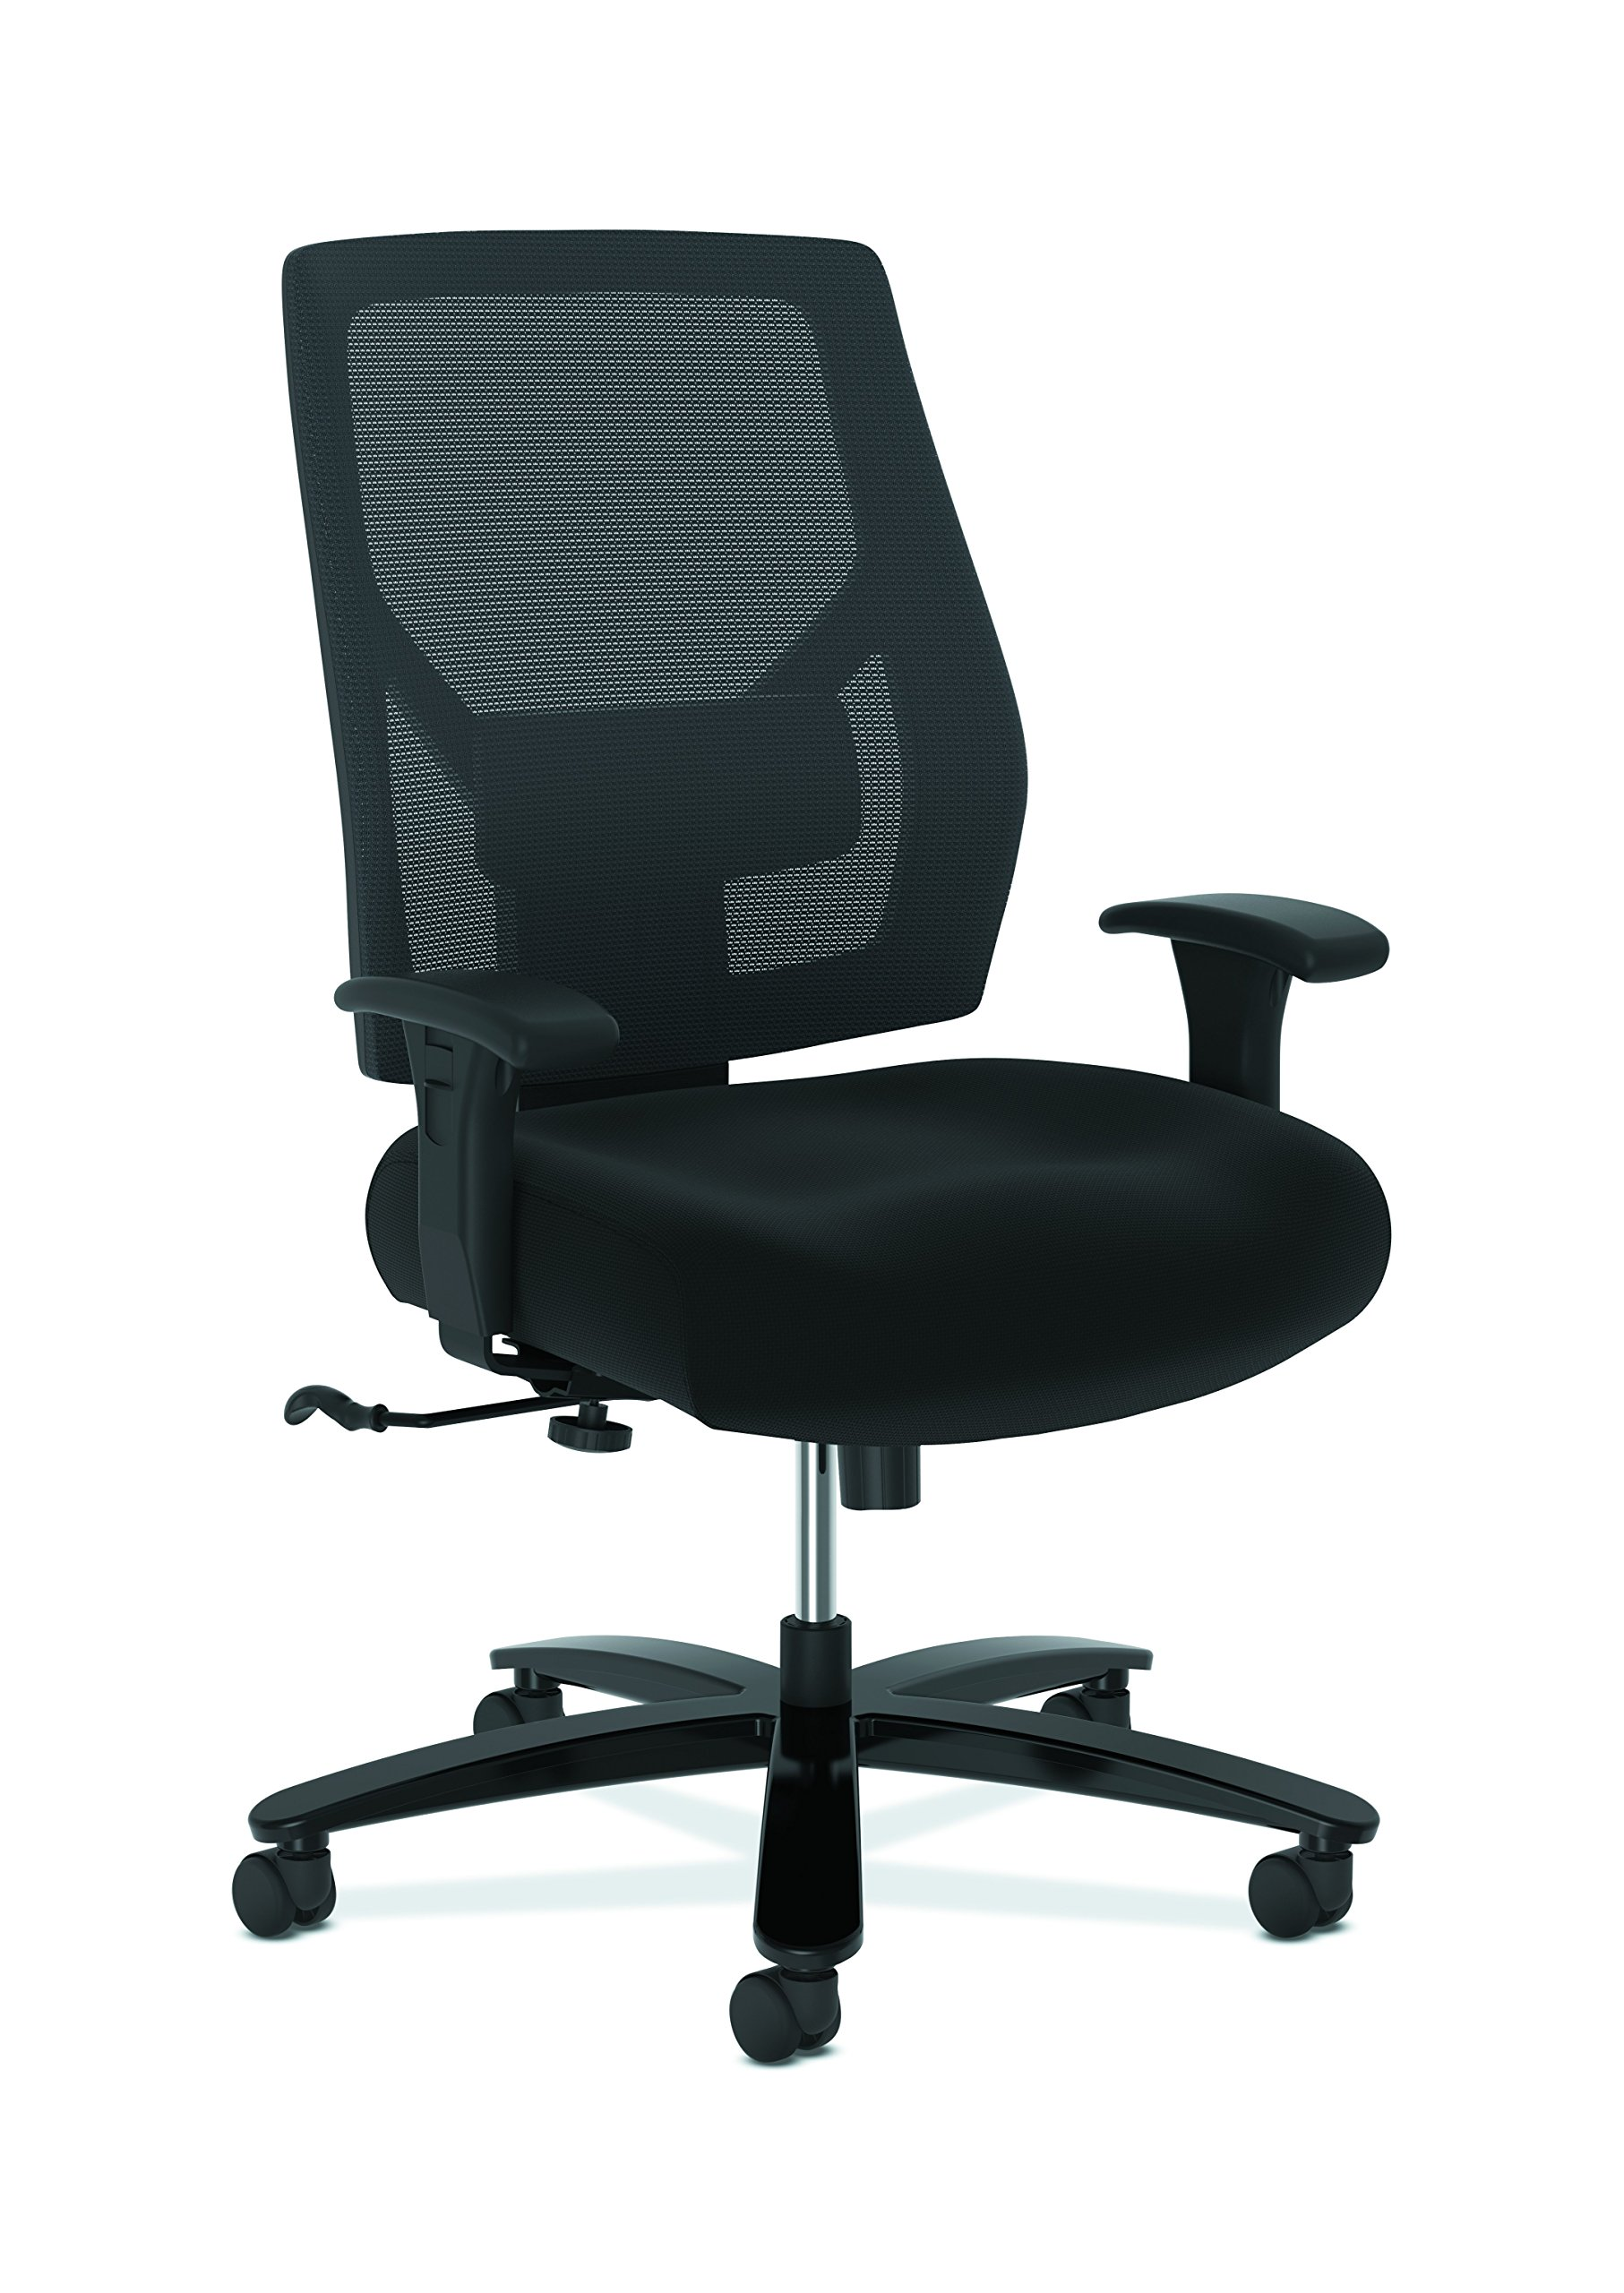 HON Crio High-Back Big and Tall Chair - Fabric Mesh Back Computer Chair for Office Desk, in Black (HVL581)